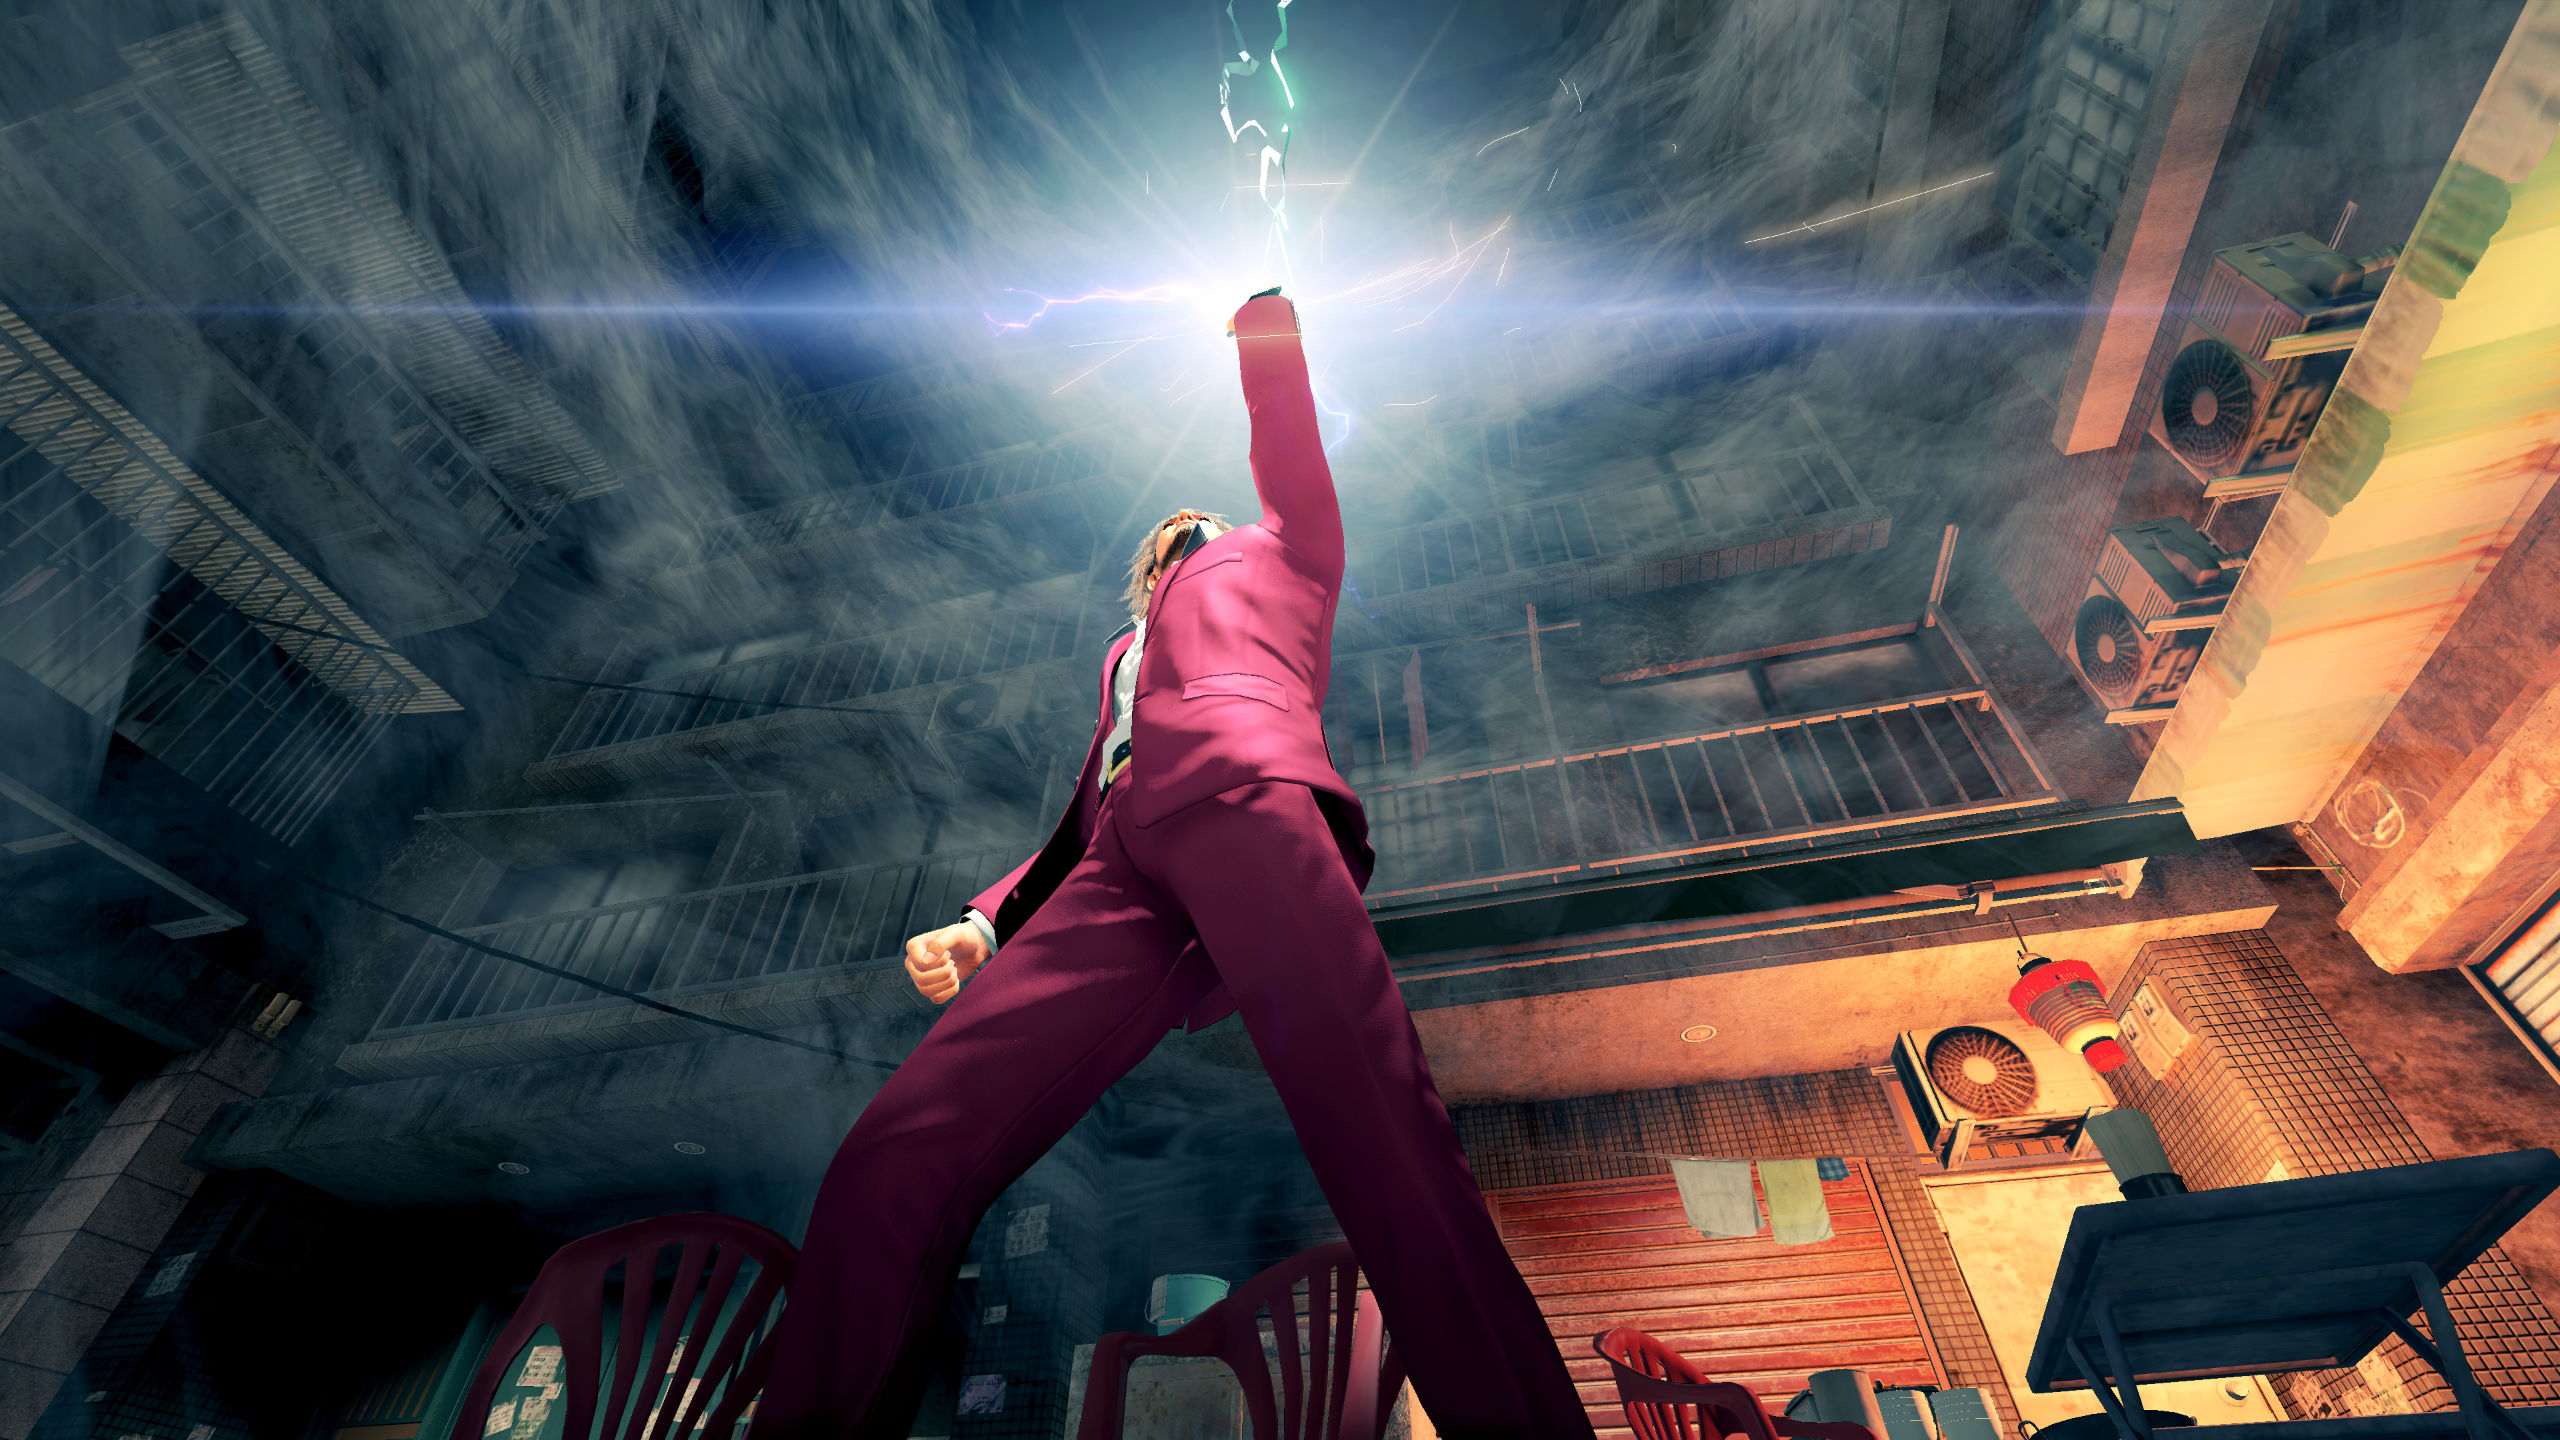 Screenshot From Yakuza: Like A Dragon Where A Man Holds His Glowing Fist In The Air Like He-Man Or Something